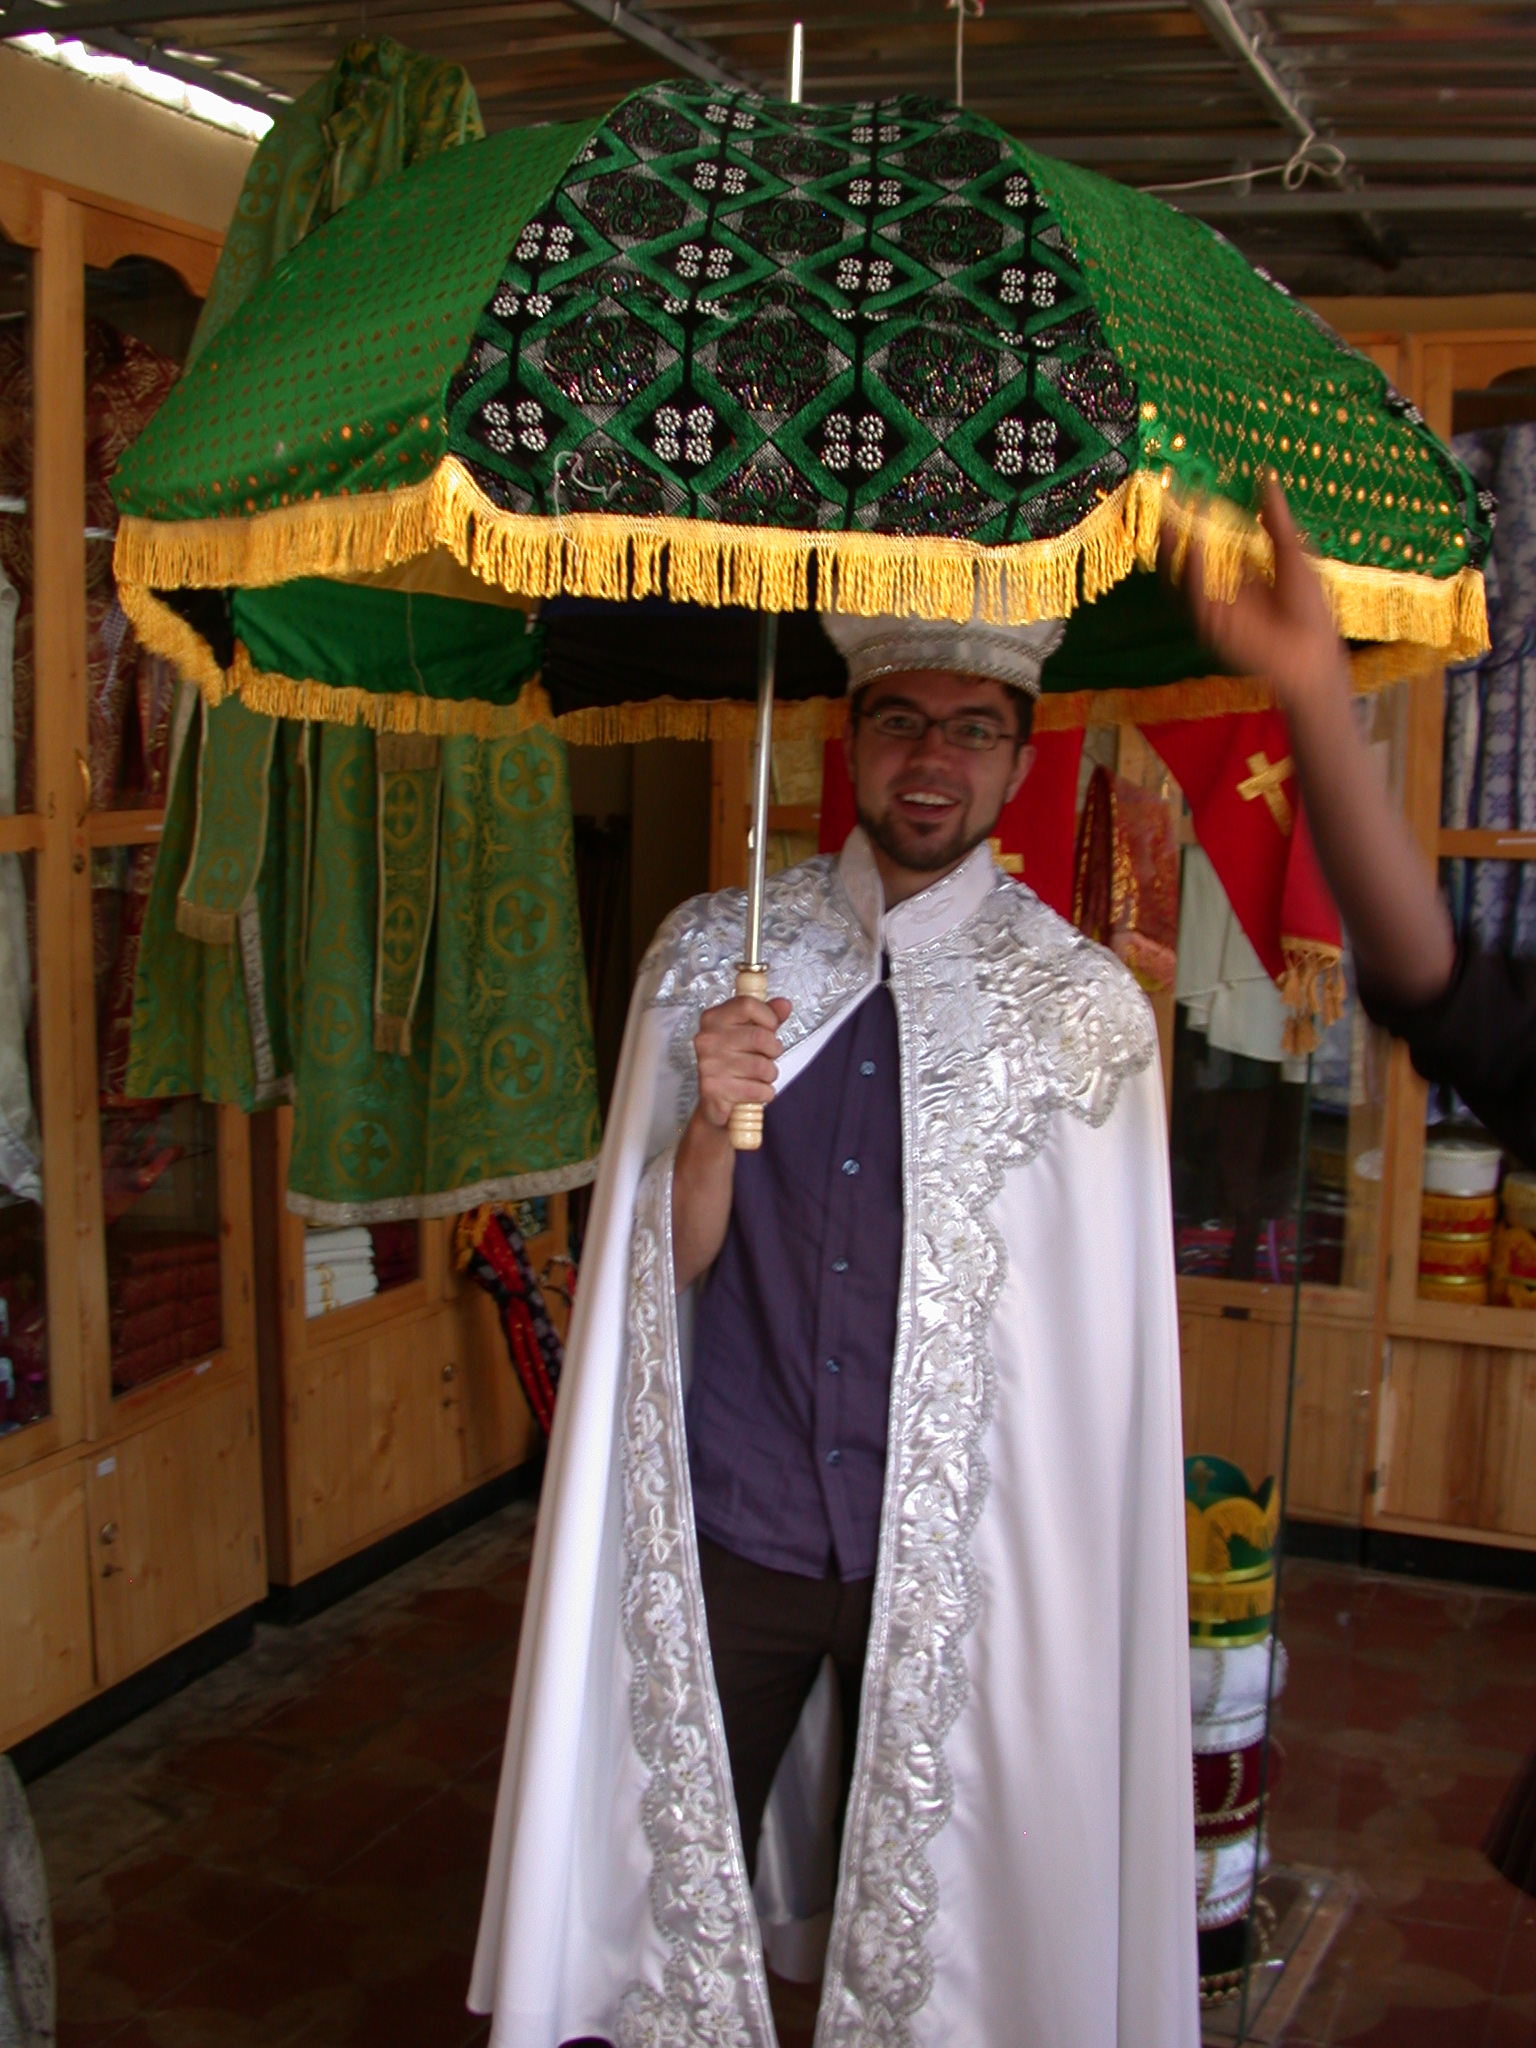 Frederick in Marriage Gown With Umbrella at Church Shop, Addis Ababa, Ethiopia